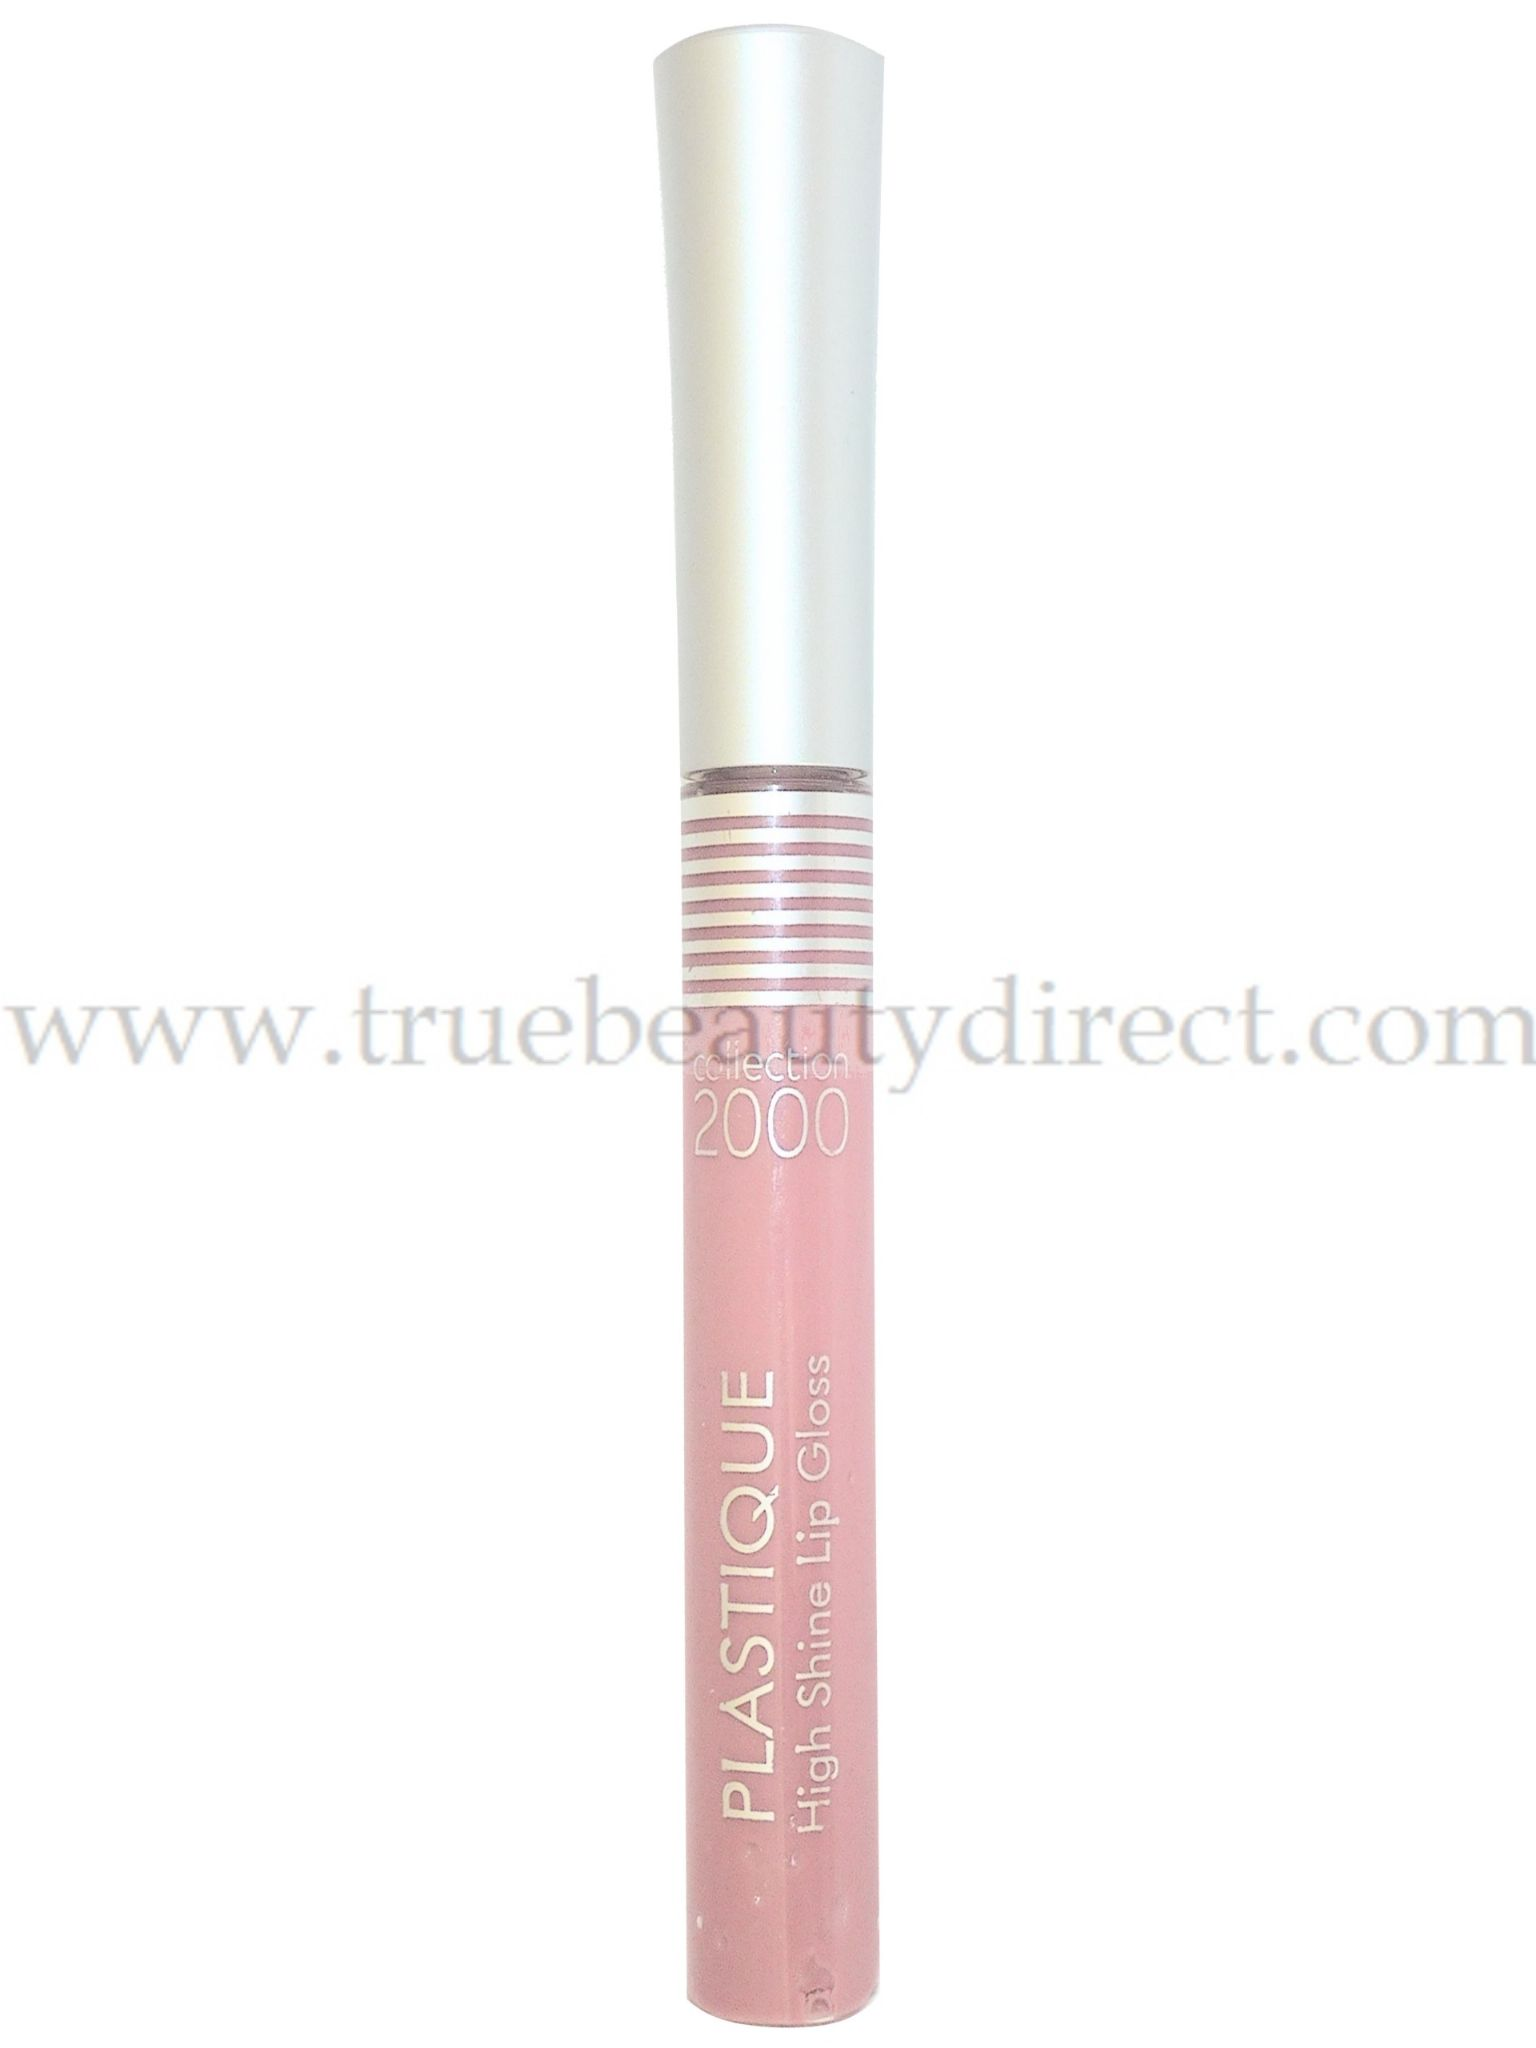 COLLECTION 2000 PLASTIQUE HIGH SHINE LIP GLOSS